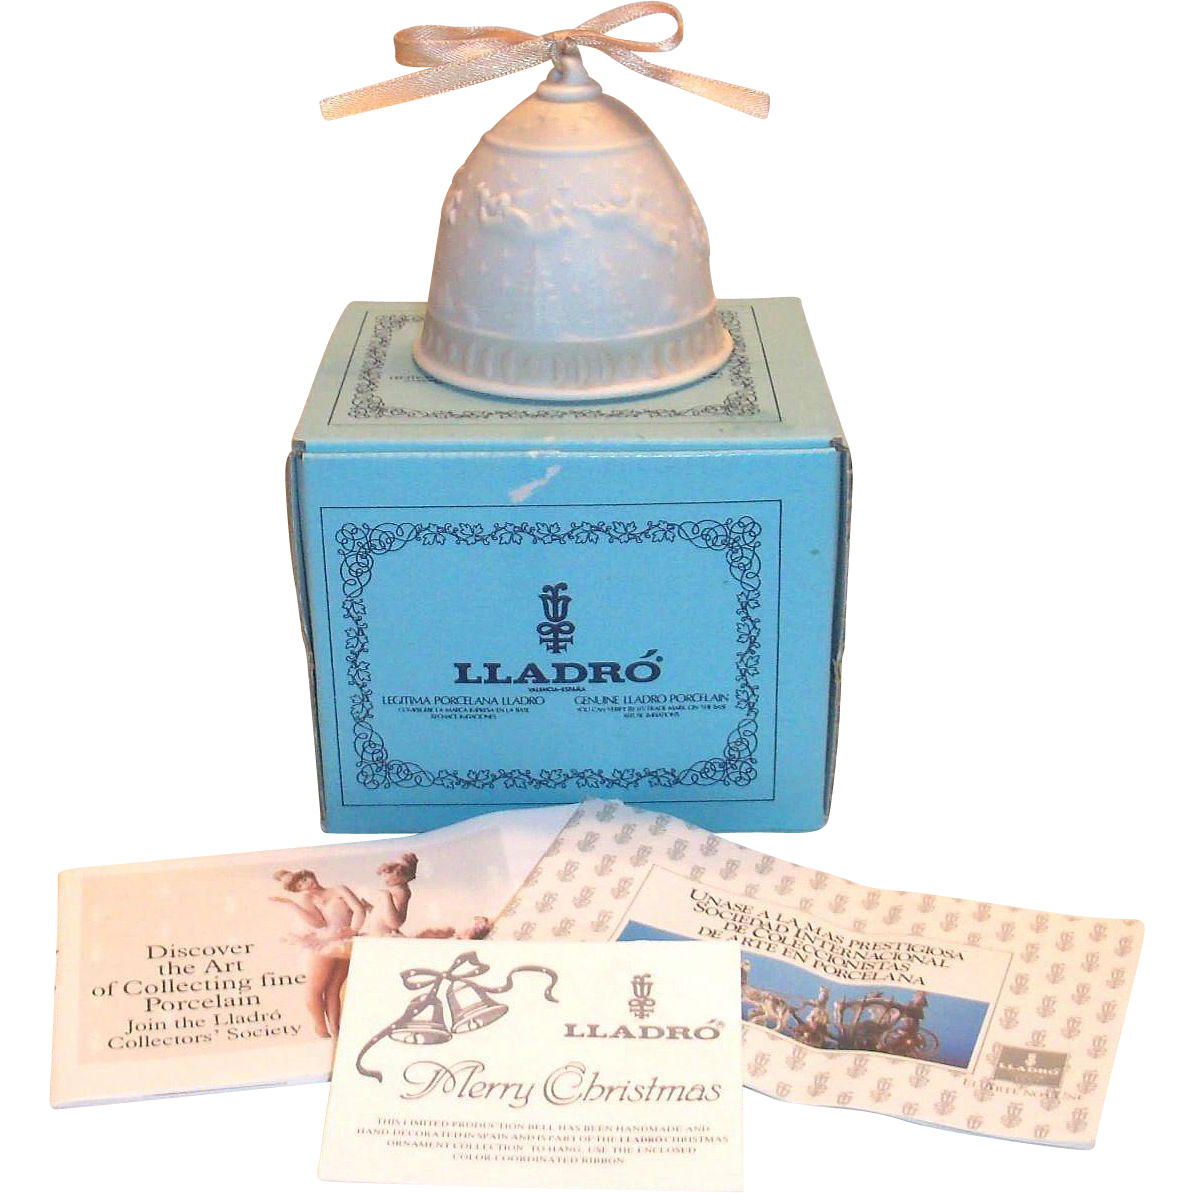 Lladro 1989 Porcelain Christmas Bell Ornament with Original Box